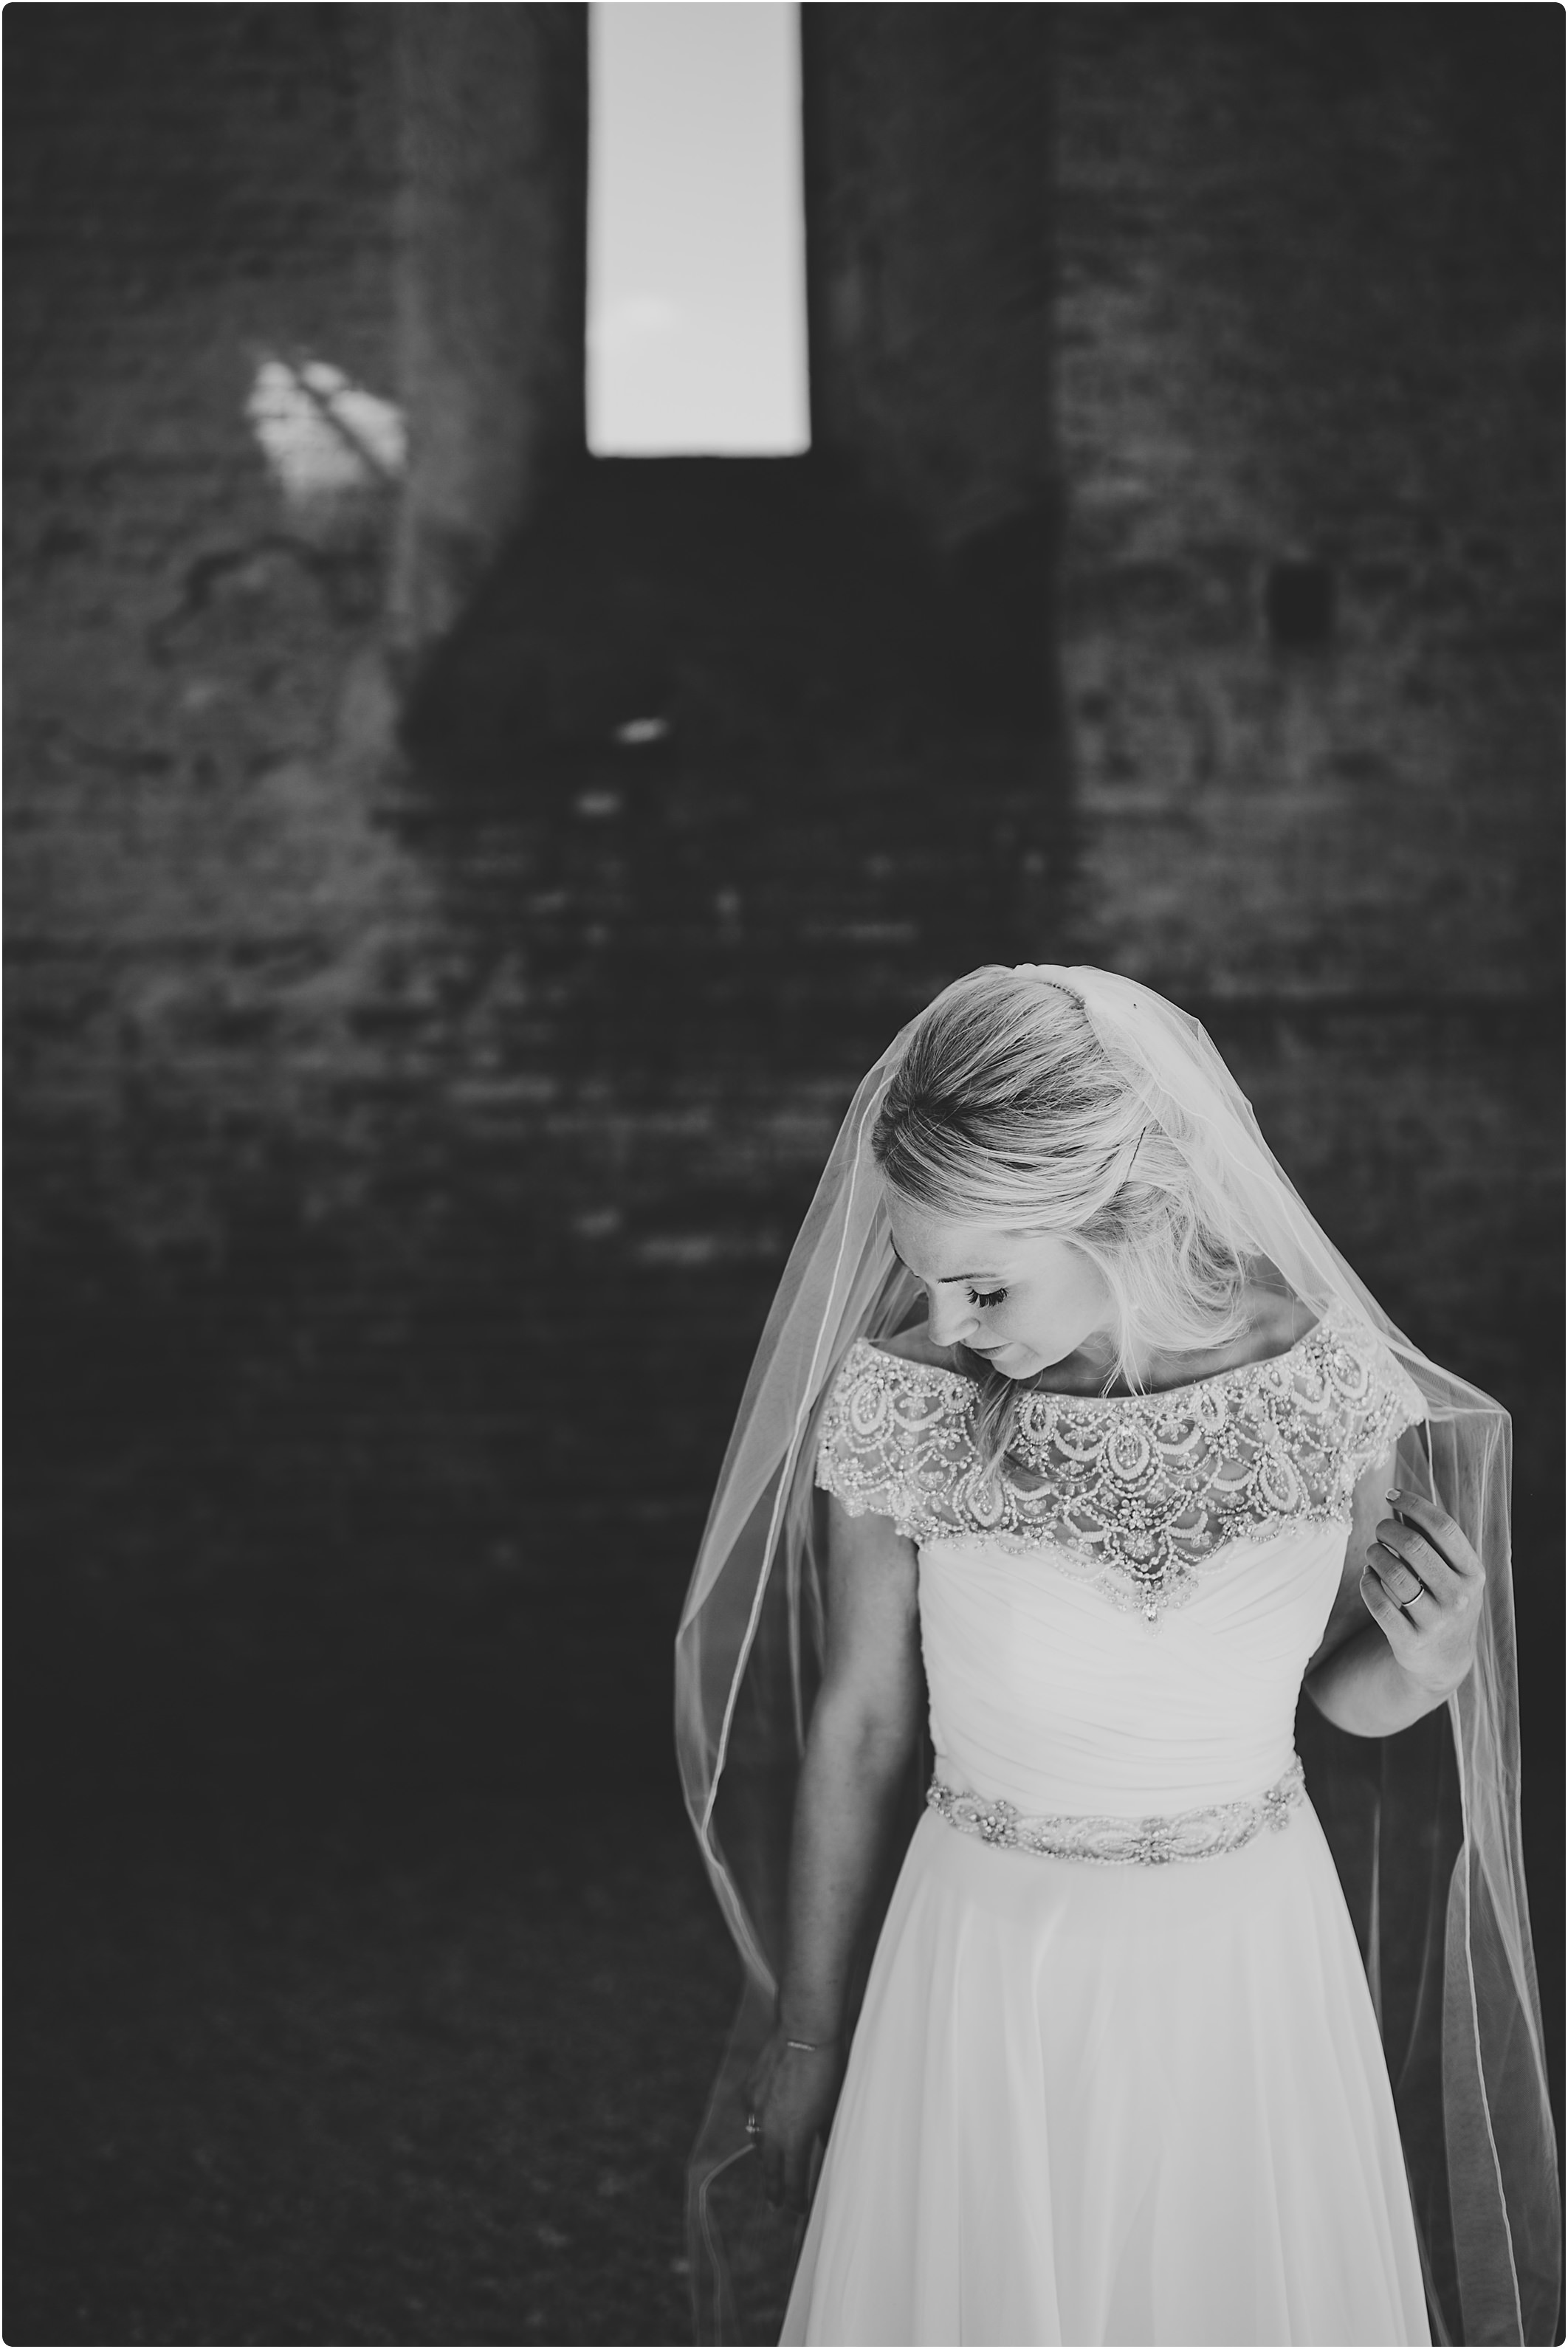 blak and white of bride in justin alexander dress at a san galgano abbey wedding